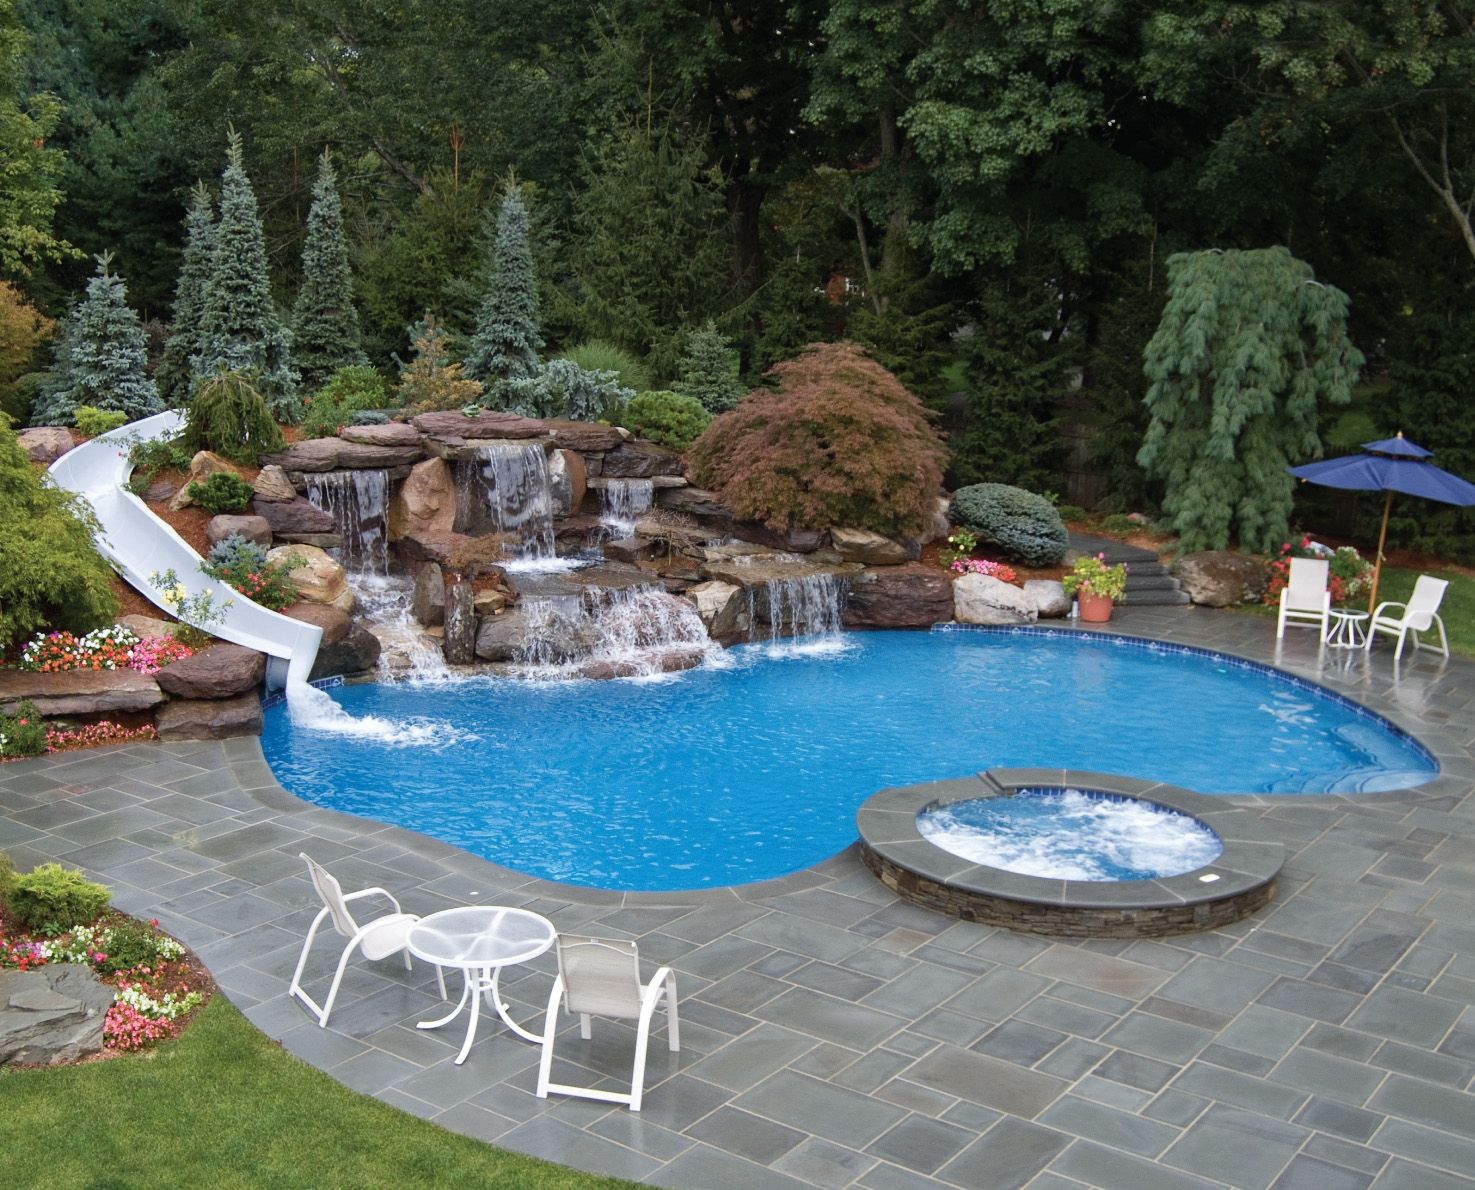 Image Result For Fiberglass Pool With Built In Slide Swimming Pool Designs Small Swimming Pools Lazy River Pool